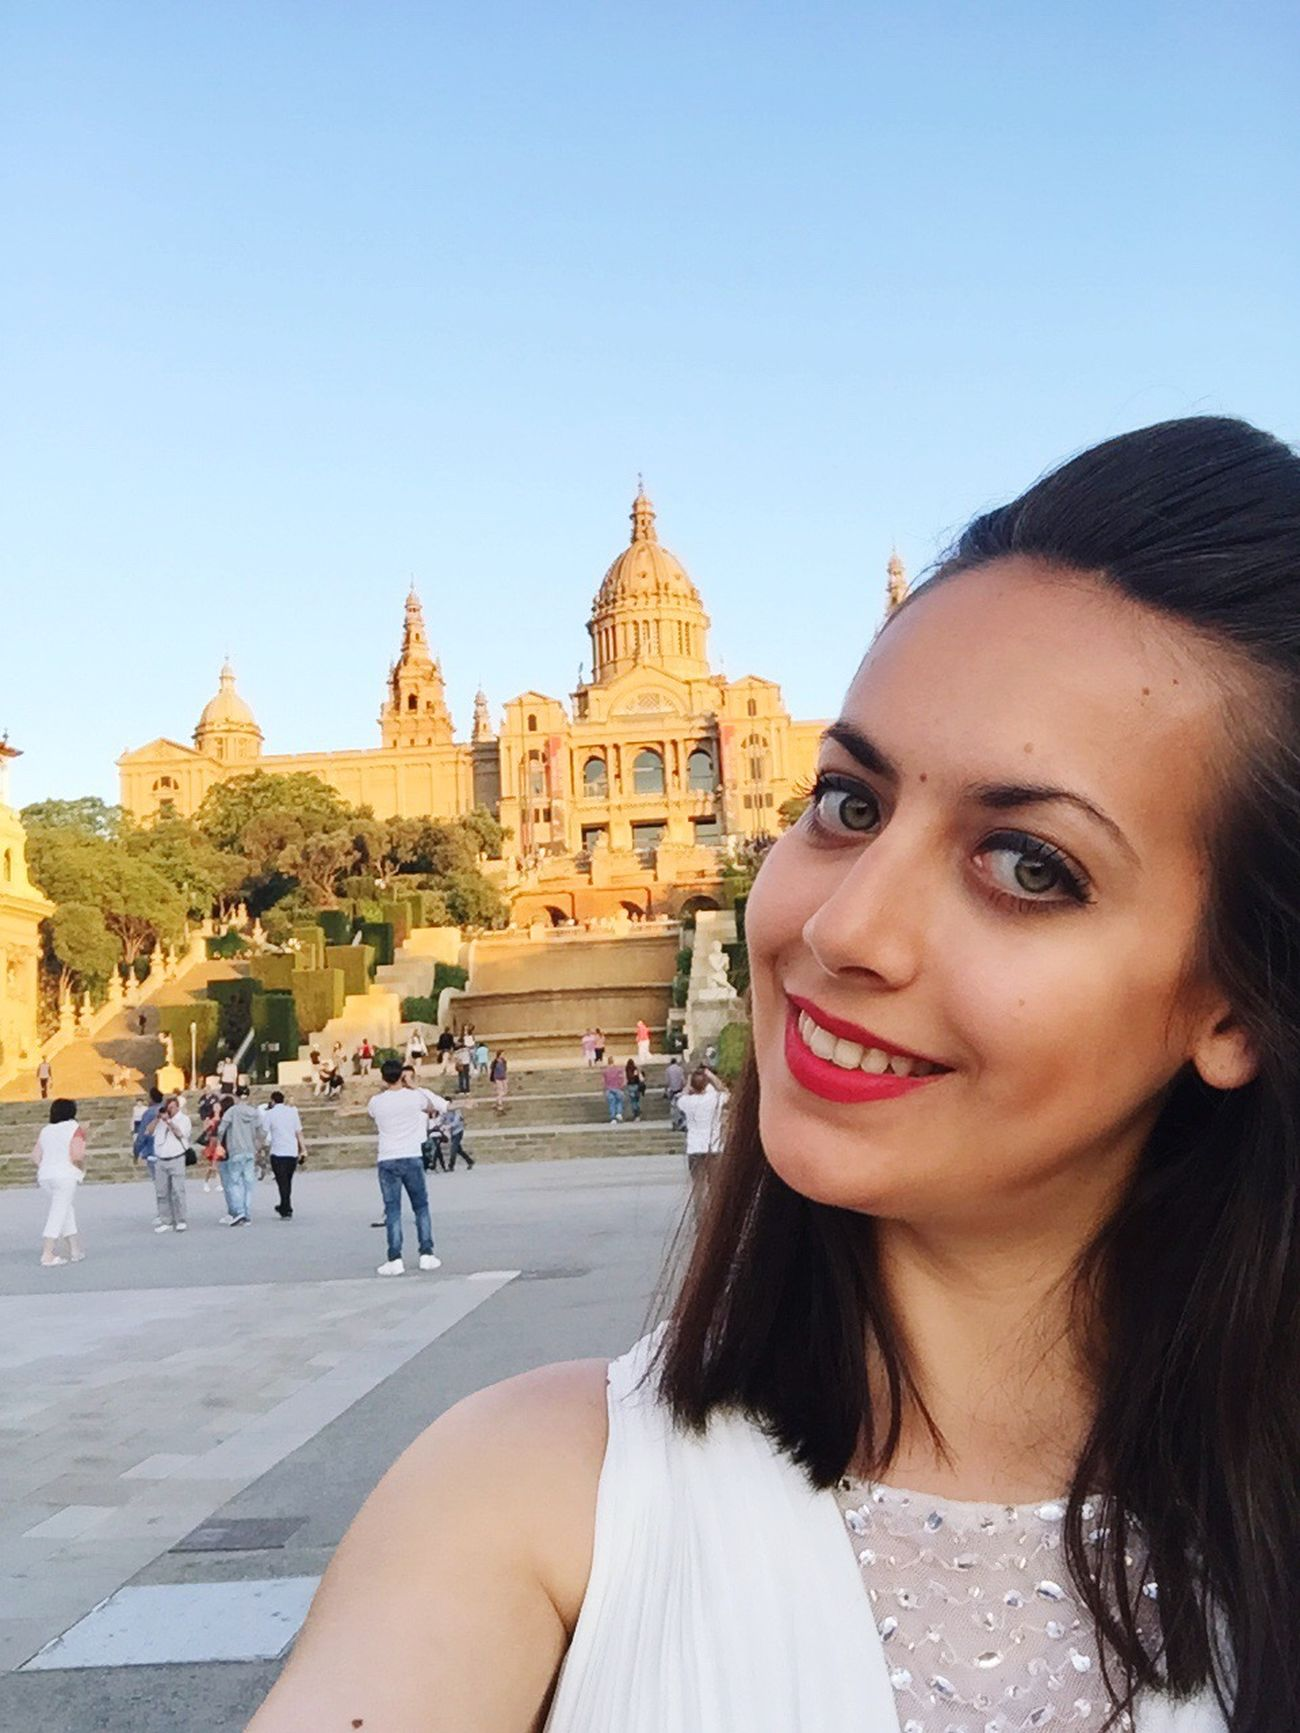 Barcelona Montjuic Clear Sky Smiling Outdoors Young Women Lifestyles